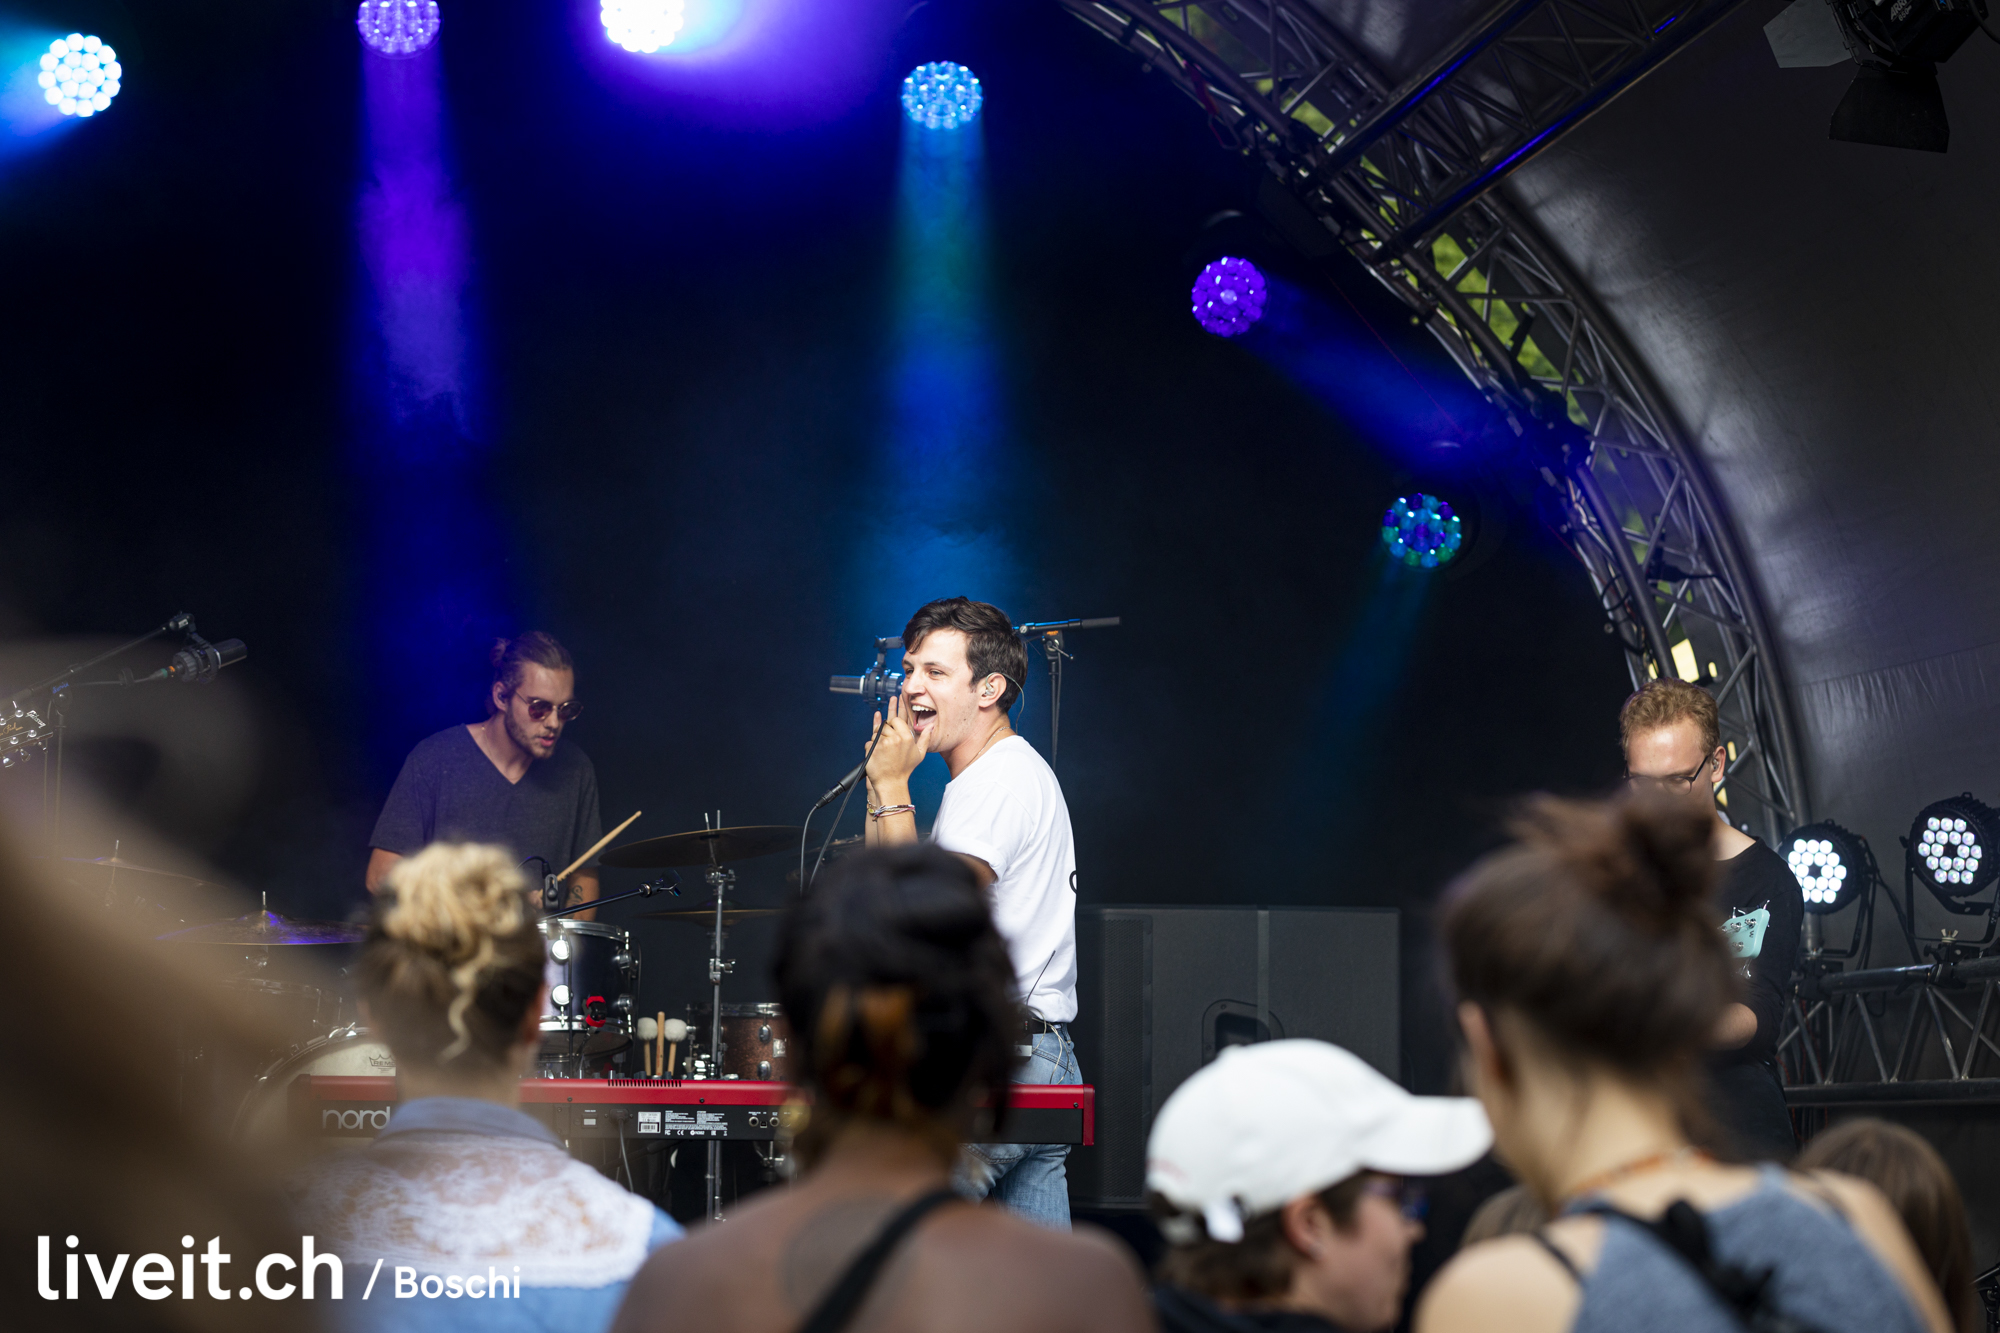 Liam May am Thunfest 2019 (liveit.ch/boschi)